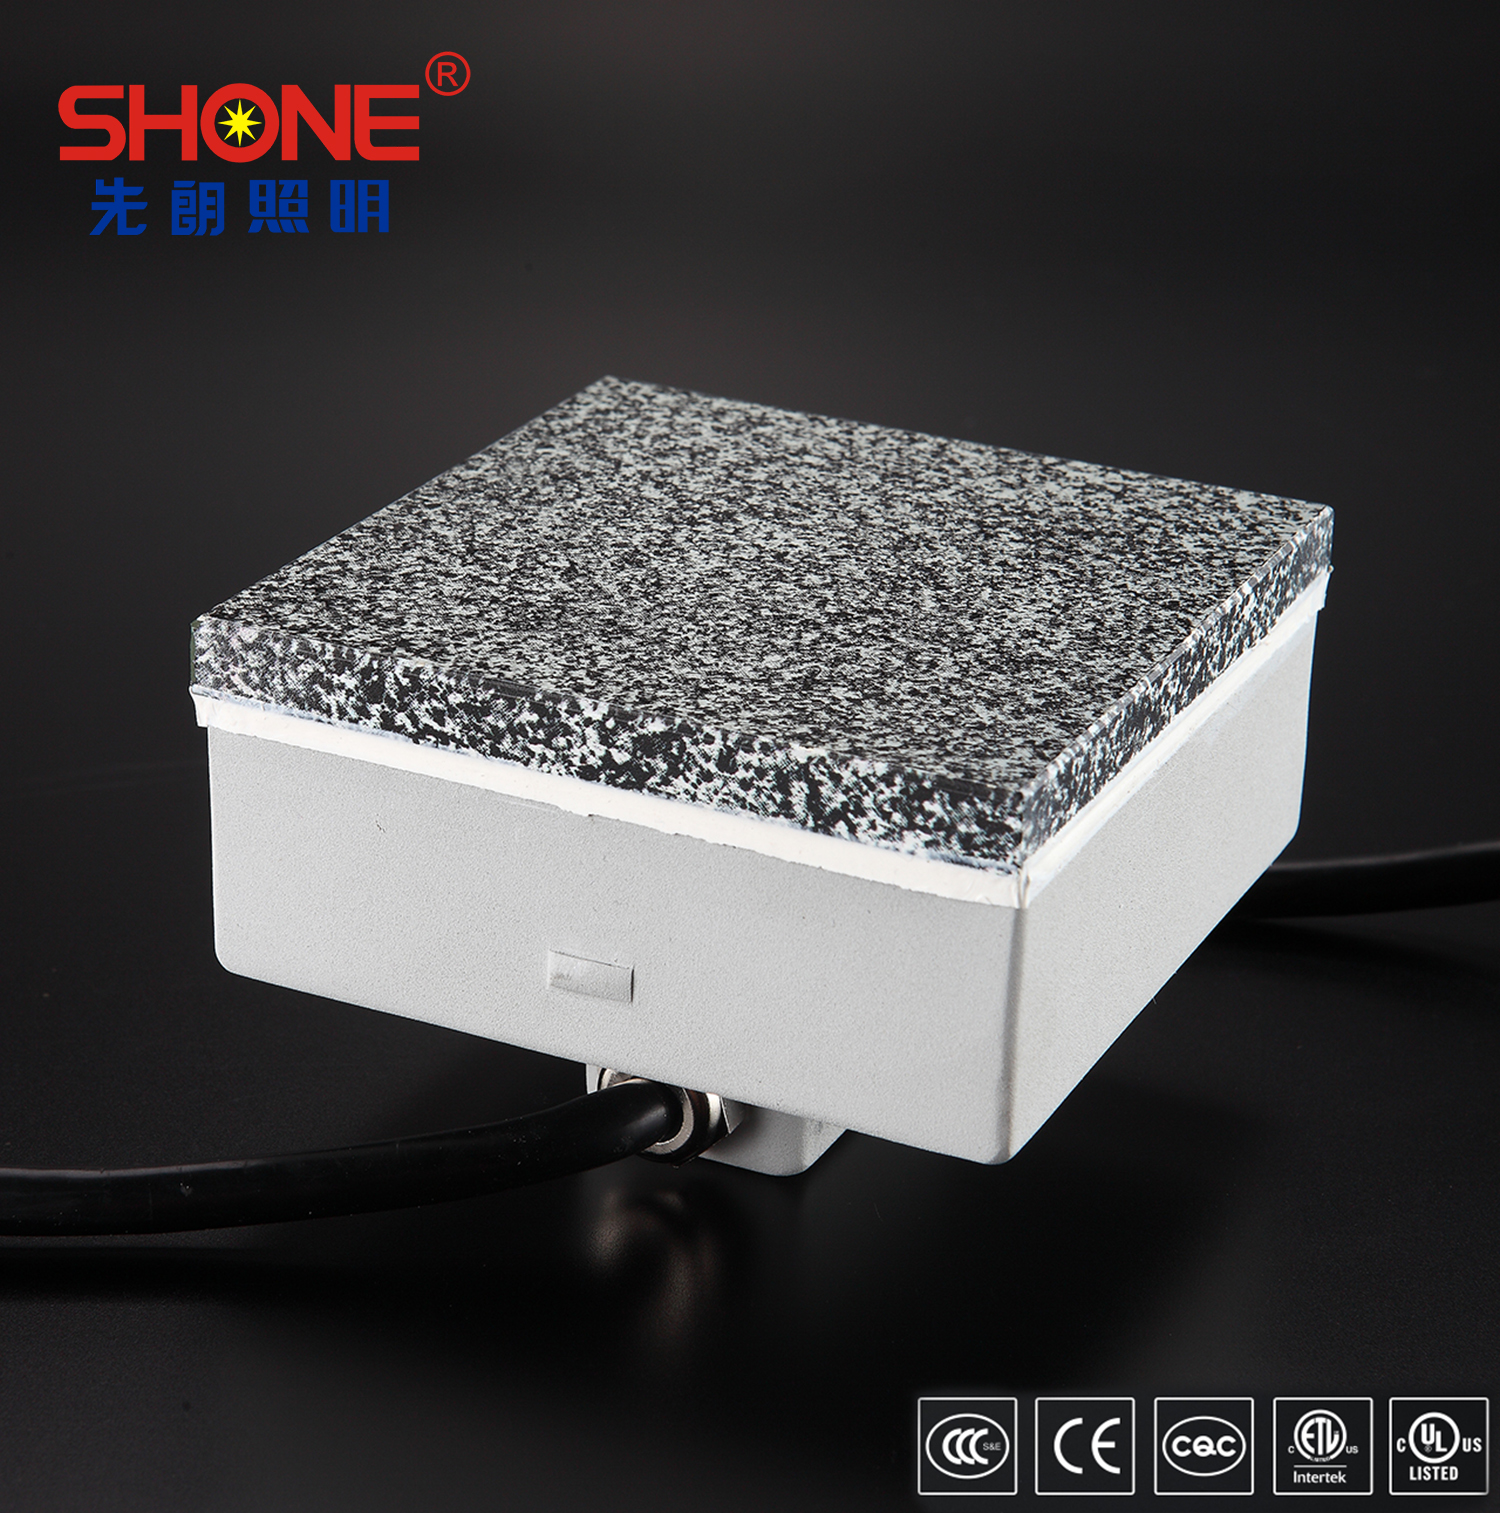 Shone Lighting Original Design Marbling LED Brick LED Tile Light IP68 for Outdoor Lighting